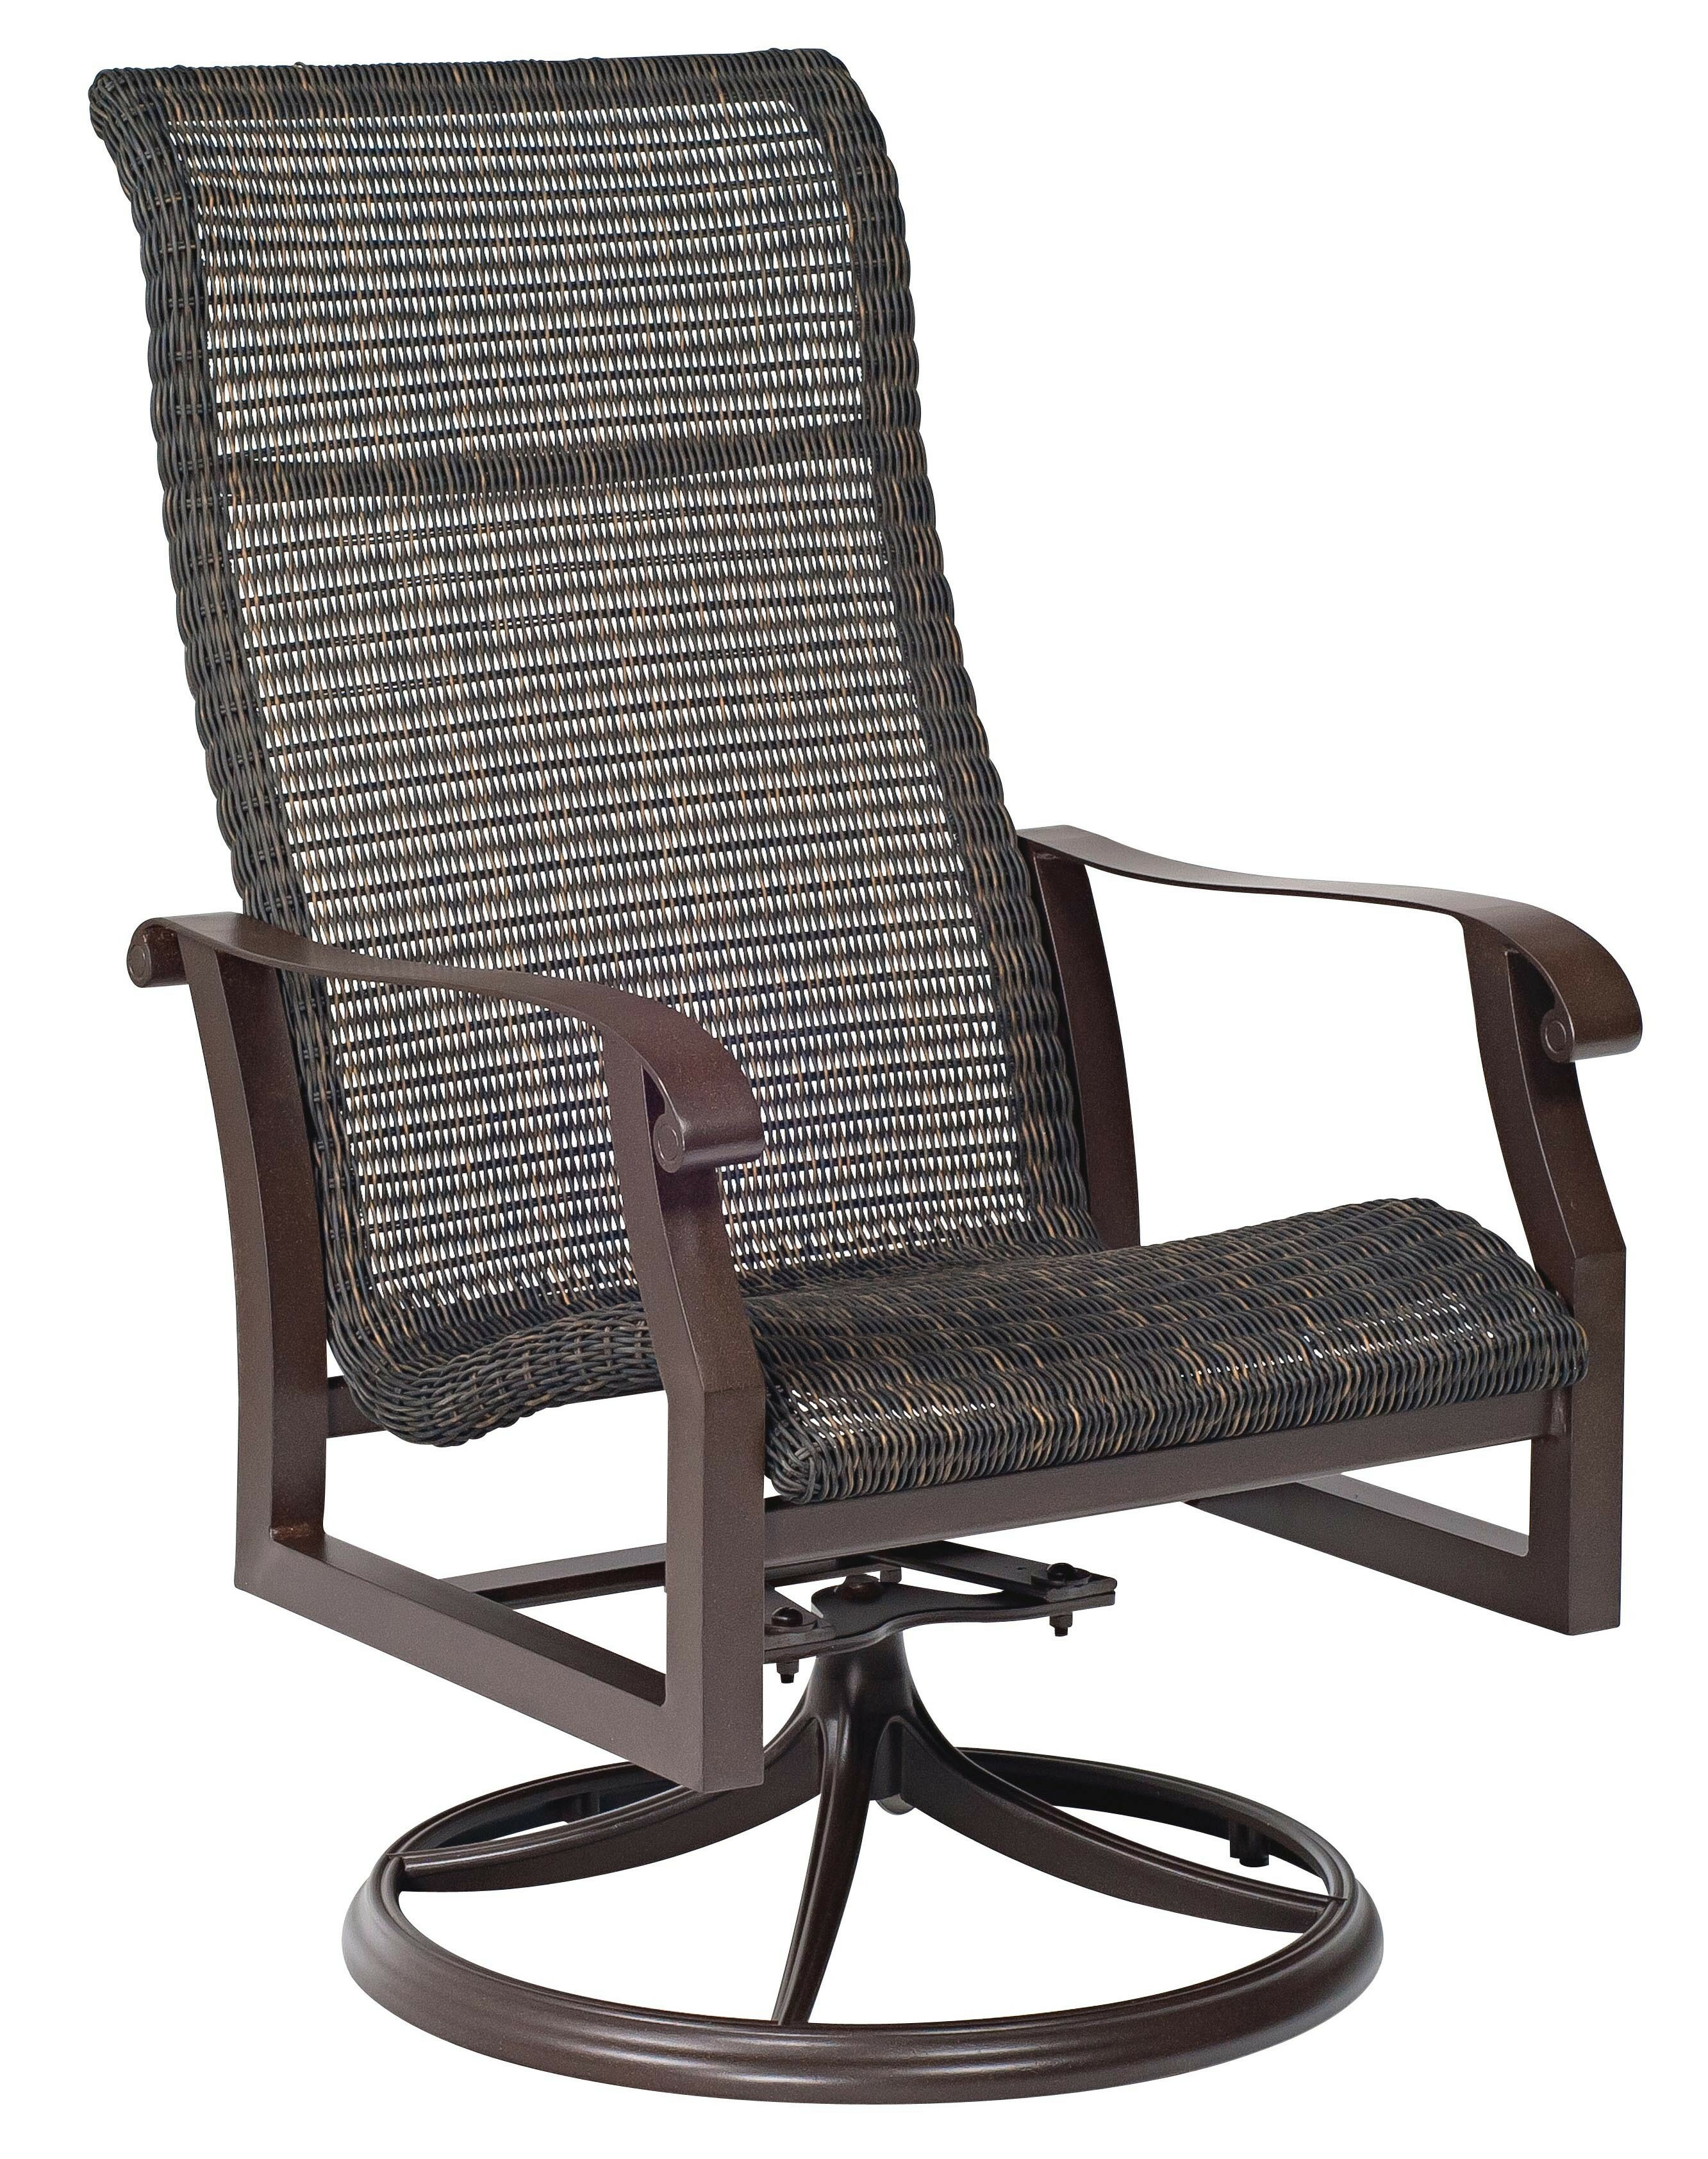 Woven High Back Swivel Rocking Chair